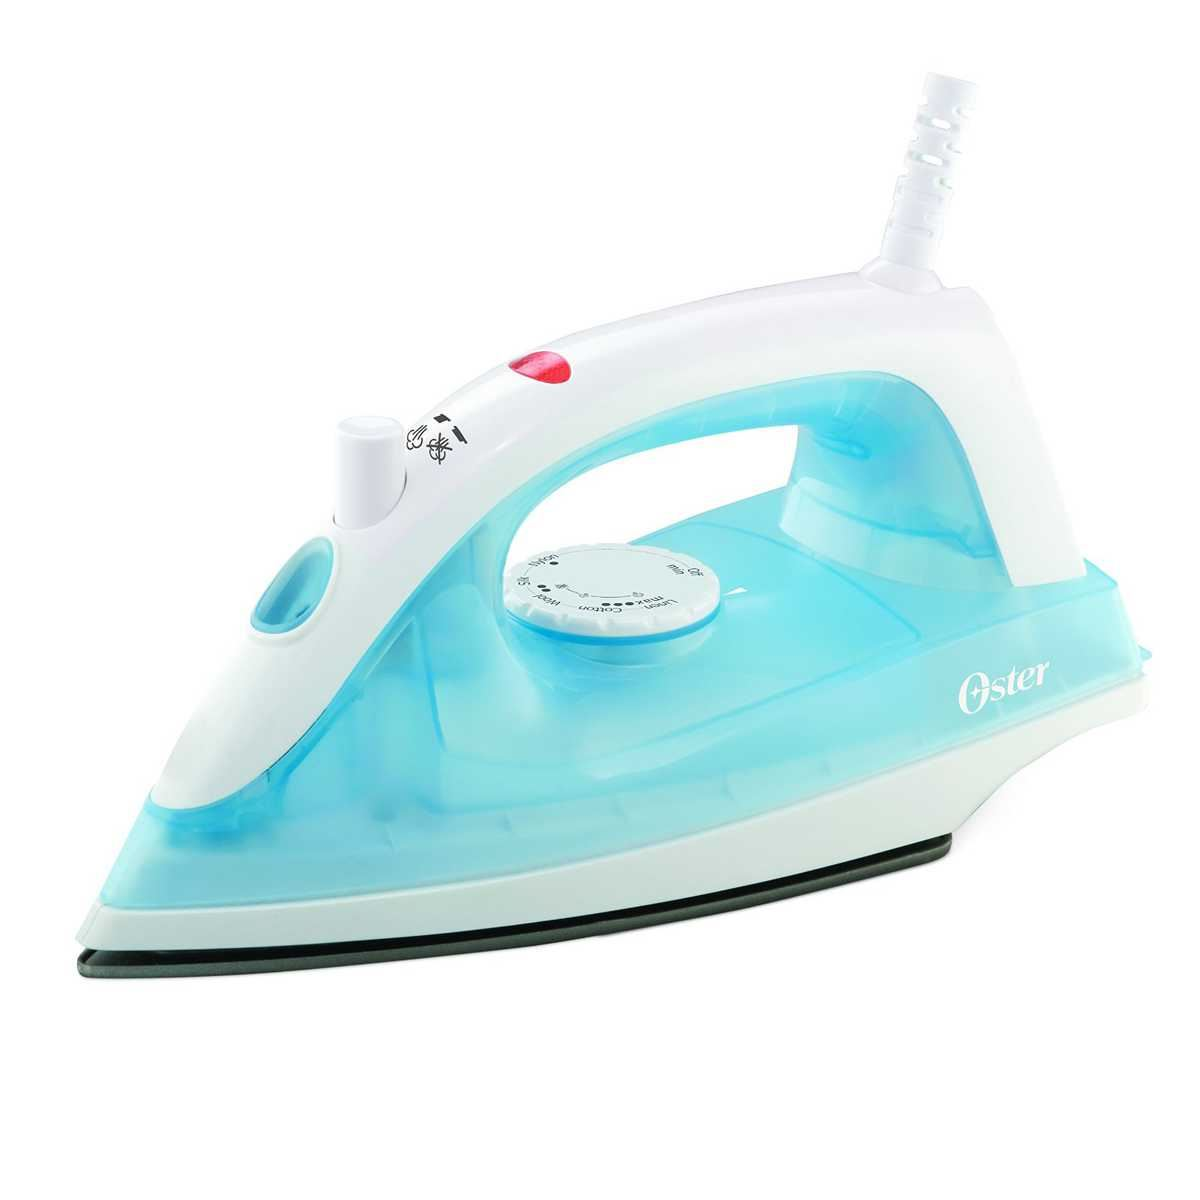 Picture of Oster Steam Iron 4405